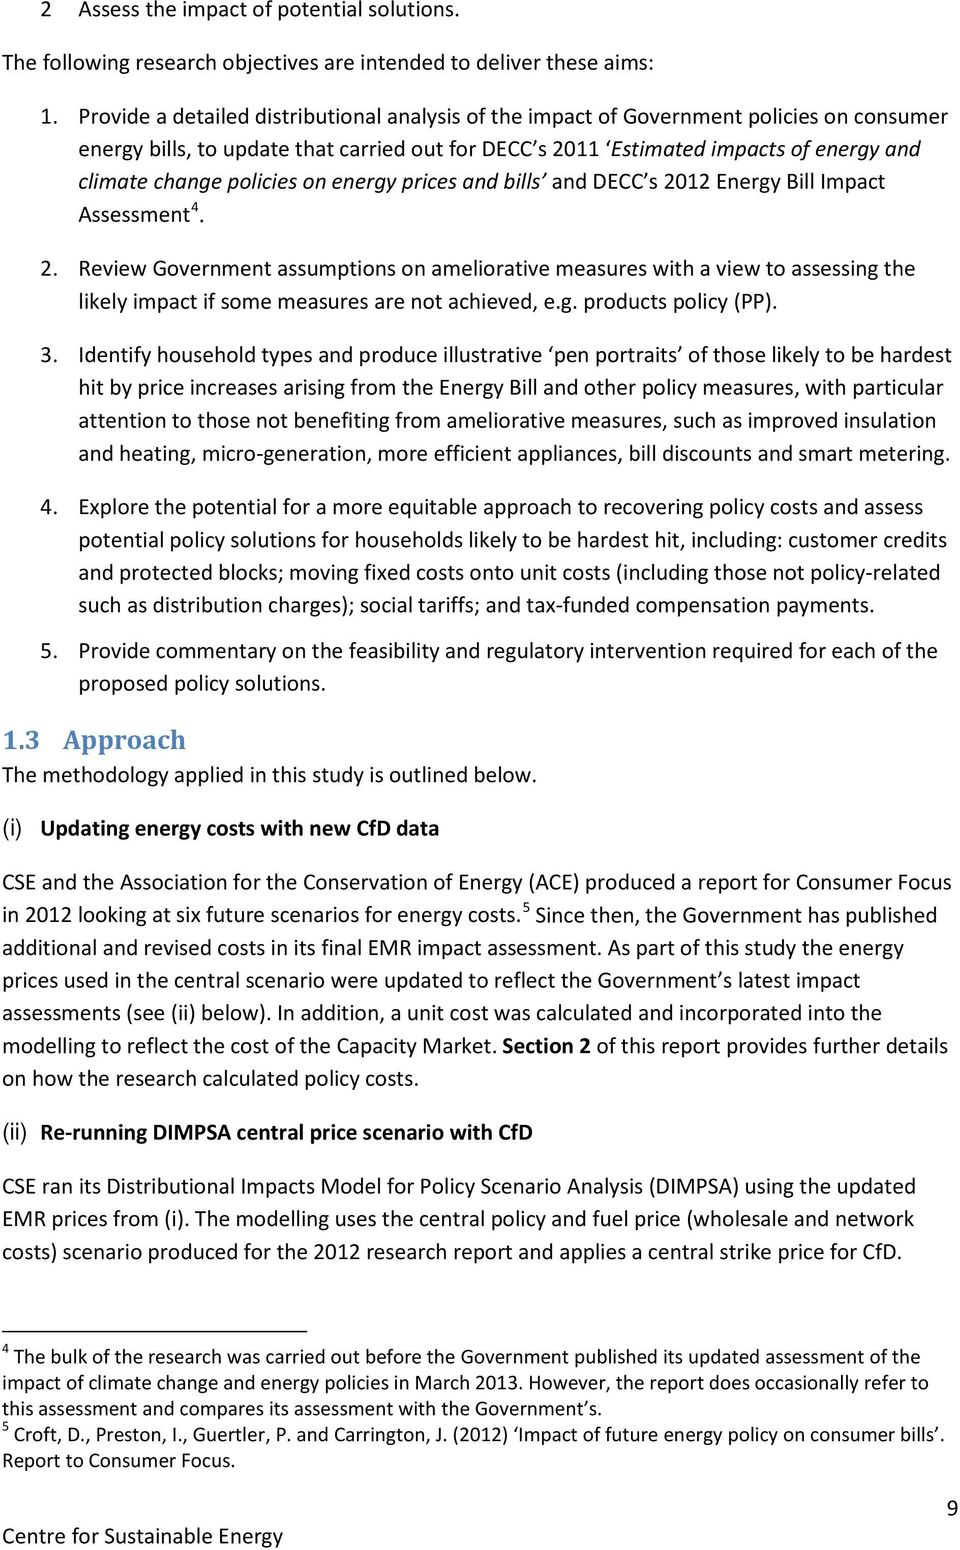 policies on energy prices and bills and DECC s 2012 Energy Bill Impact Assessment 4. 2. Review Government assumptions on ameliorative measures with a view to assessing the likely impact if some measures are not achieved, e.